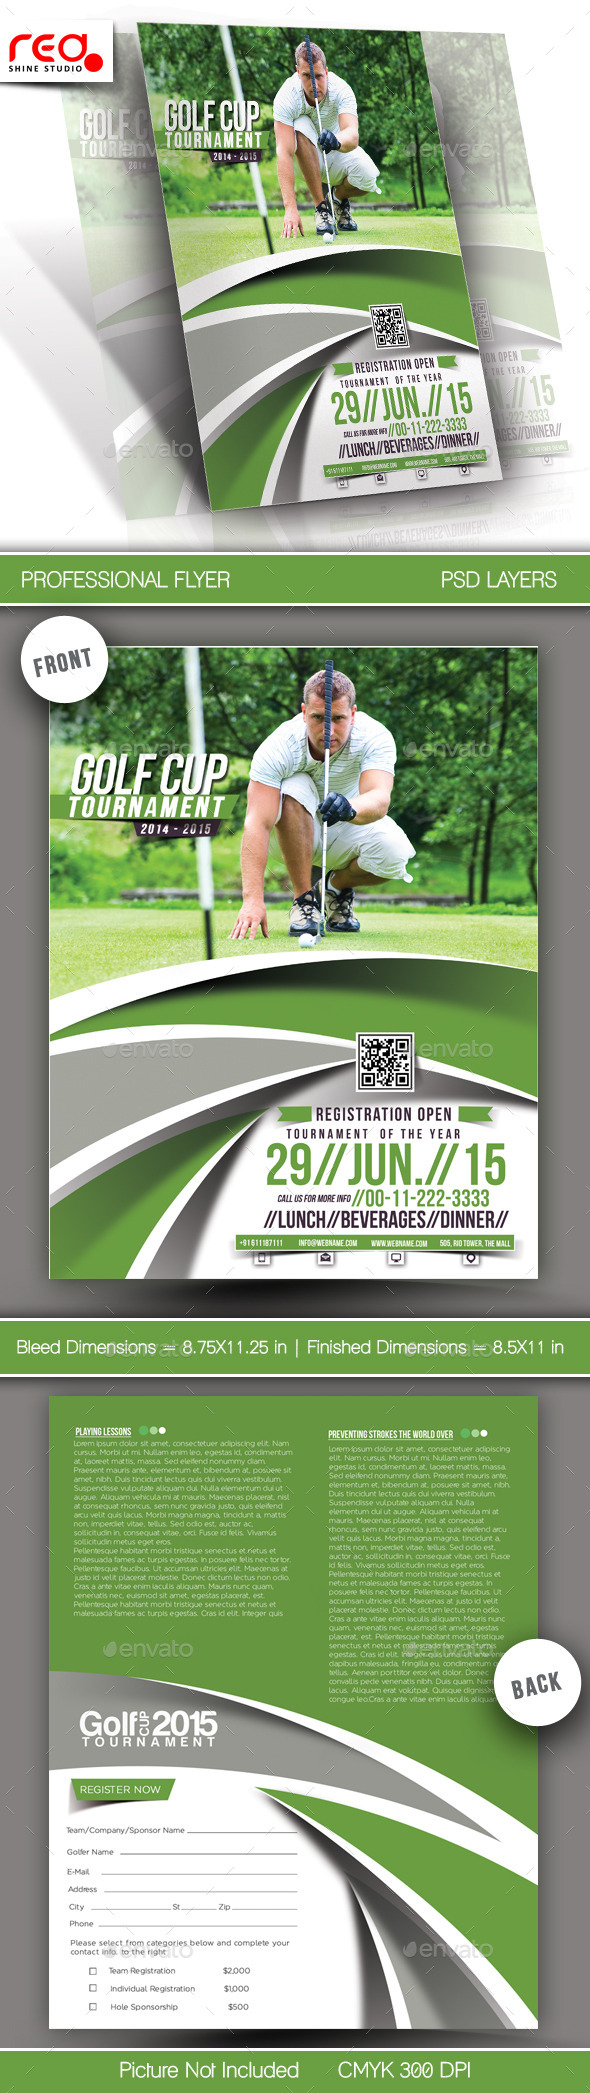 Golf Cup Tournament Flyer Template - 3 - Sports Events